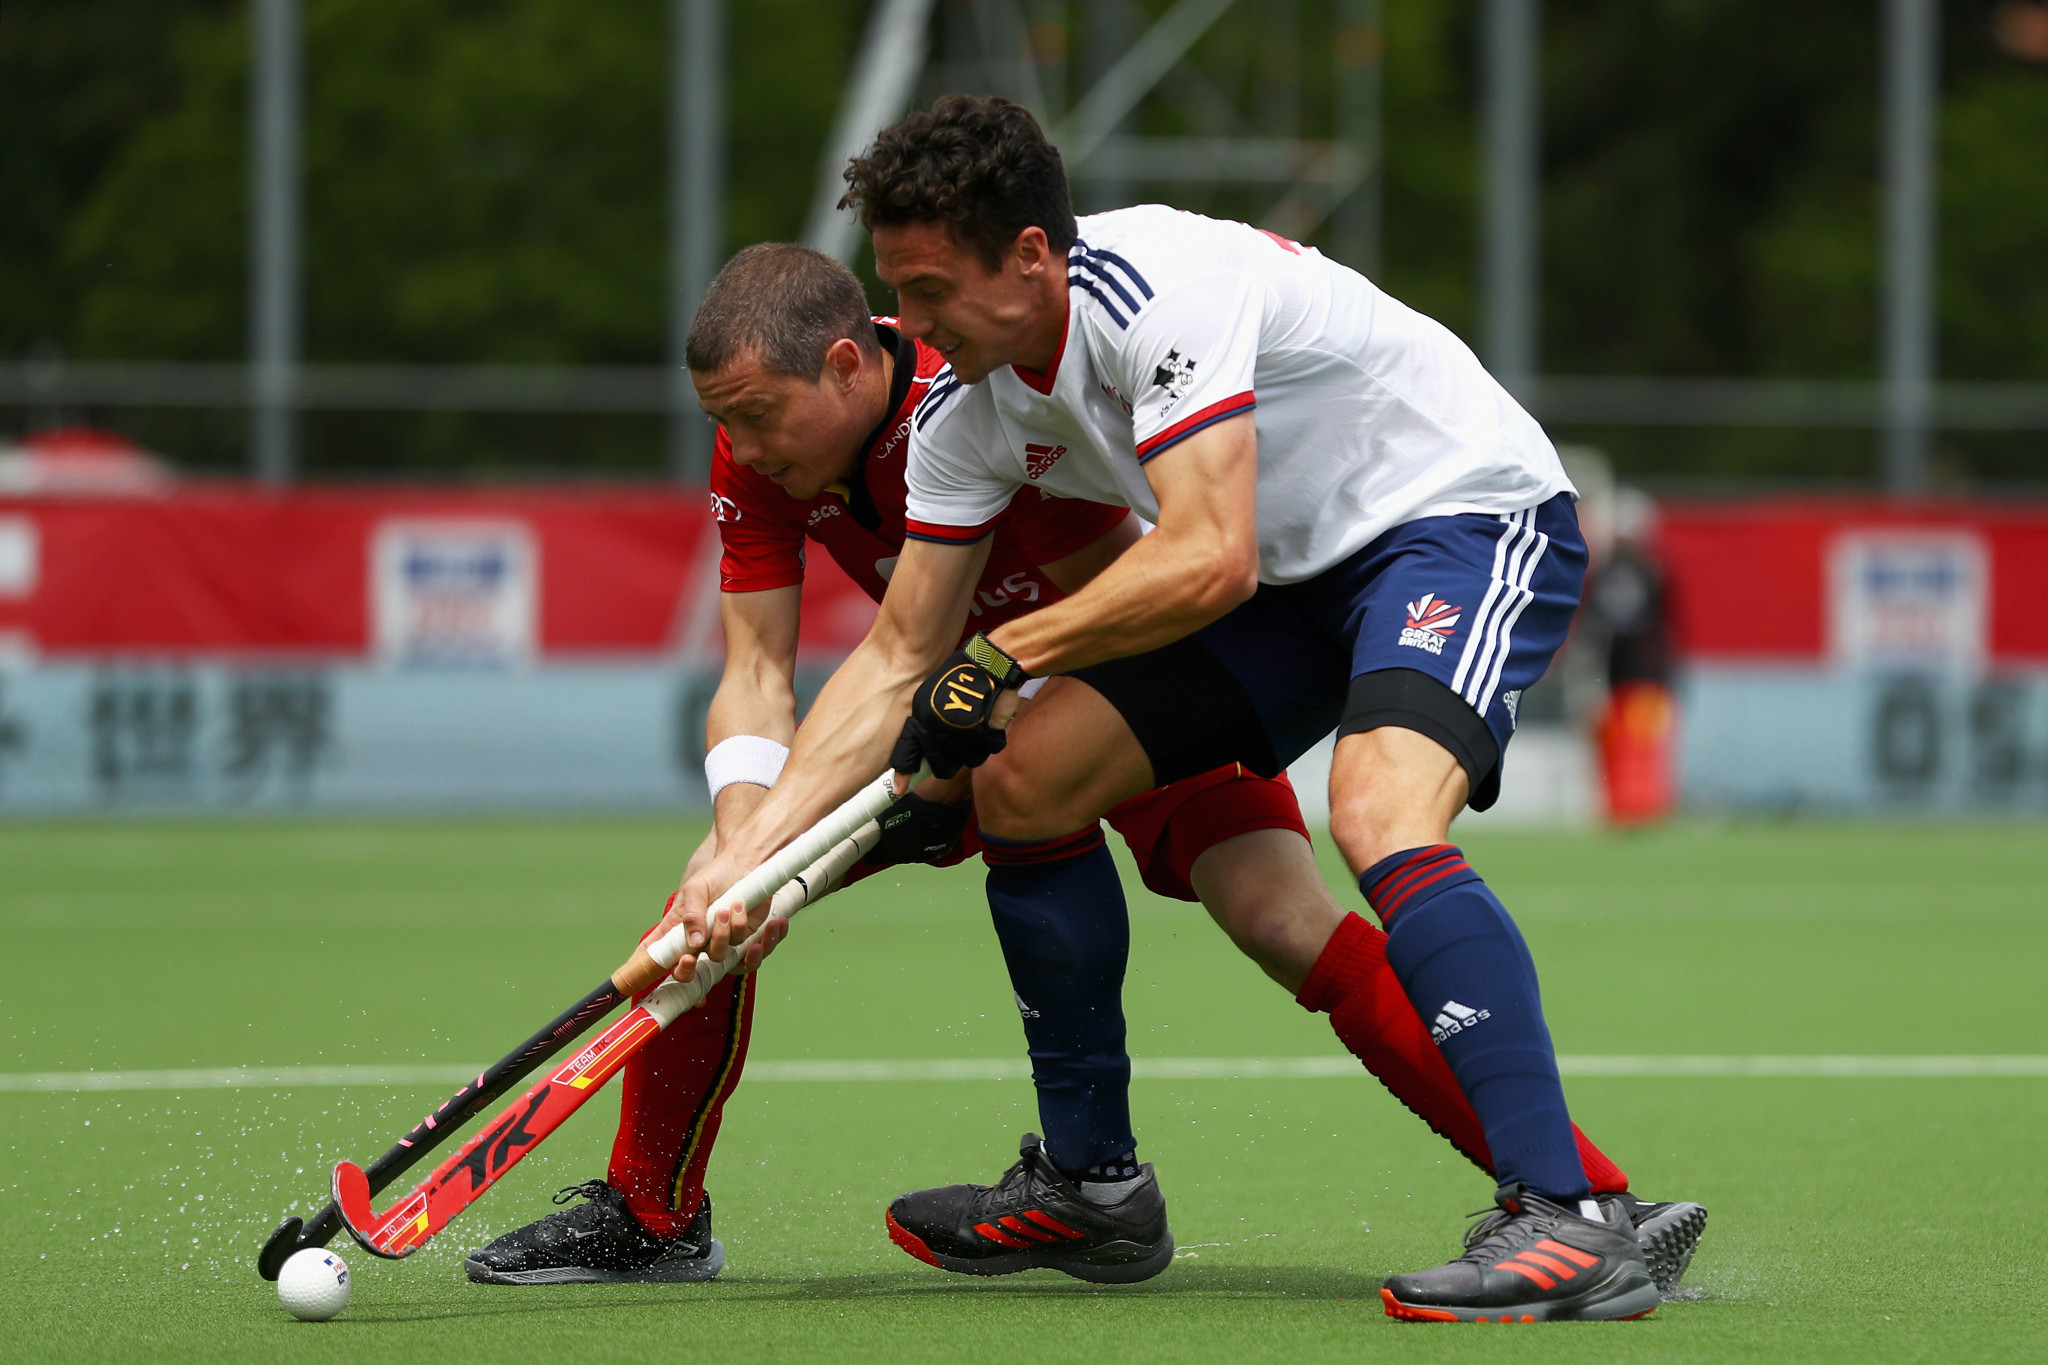 Belgium secure double victory against Britain in FIH Pro League